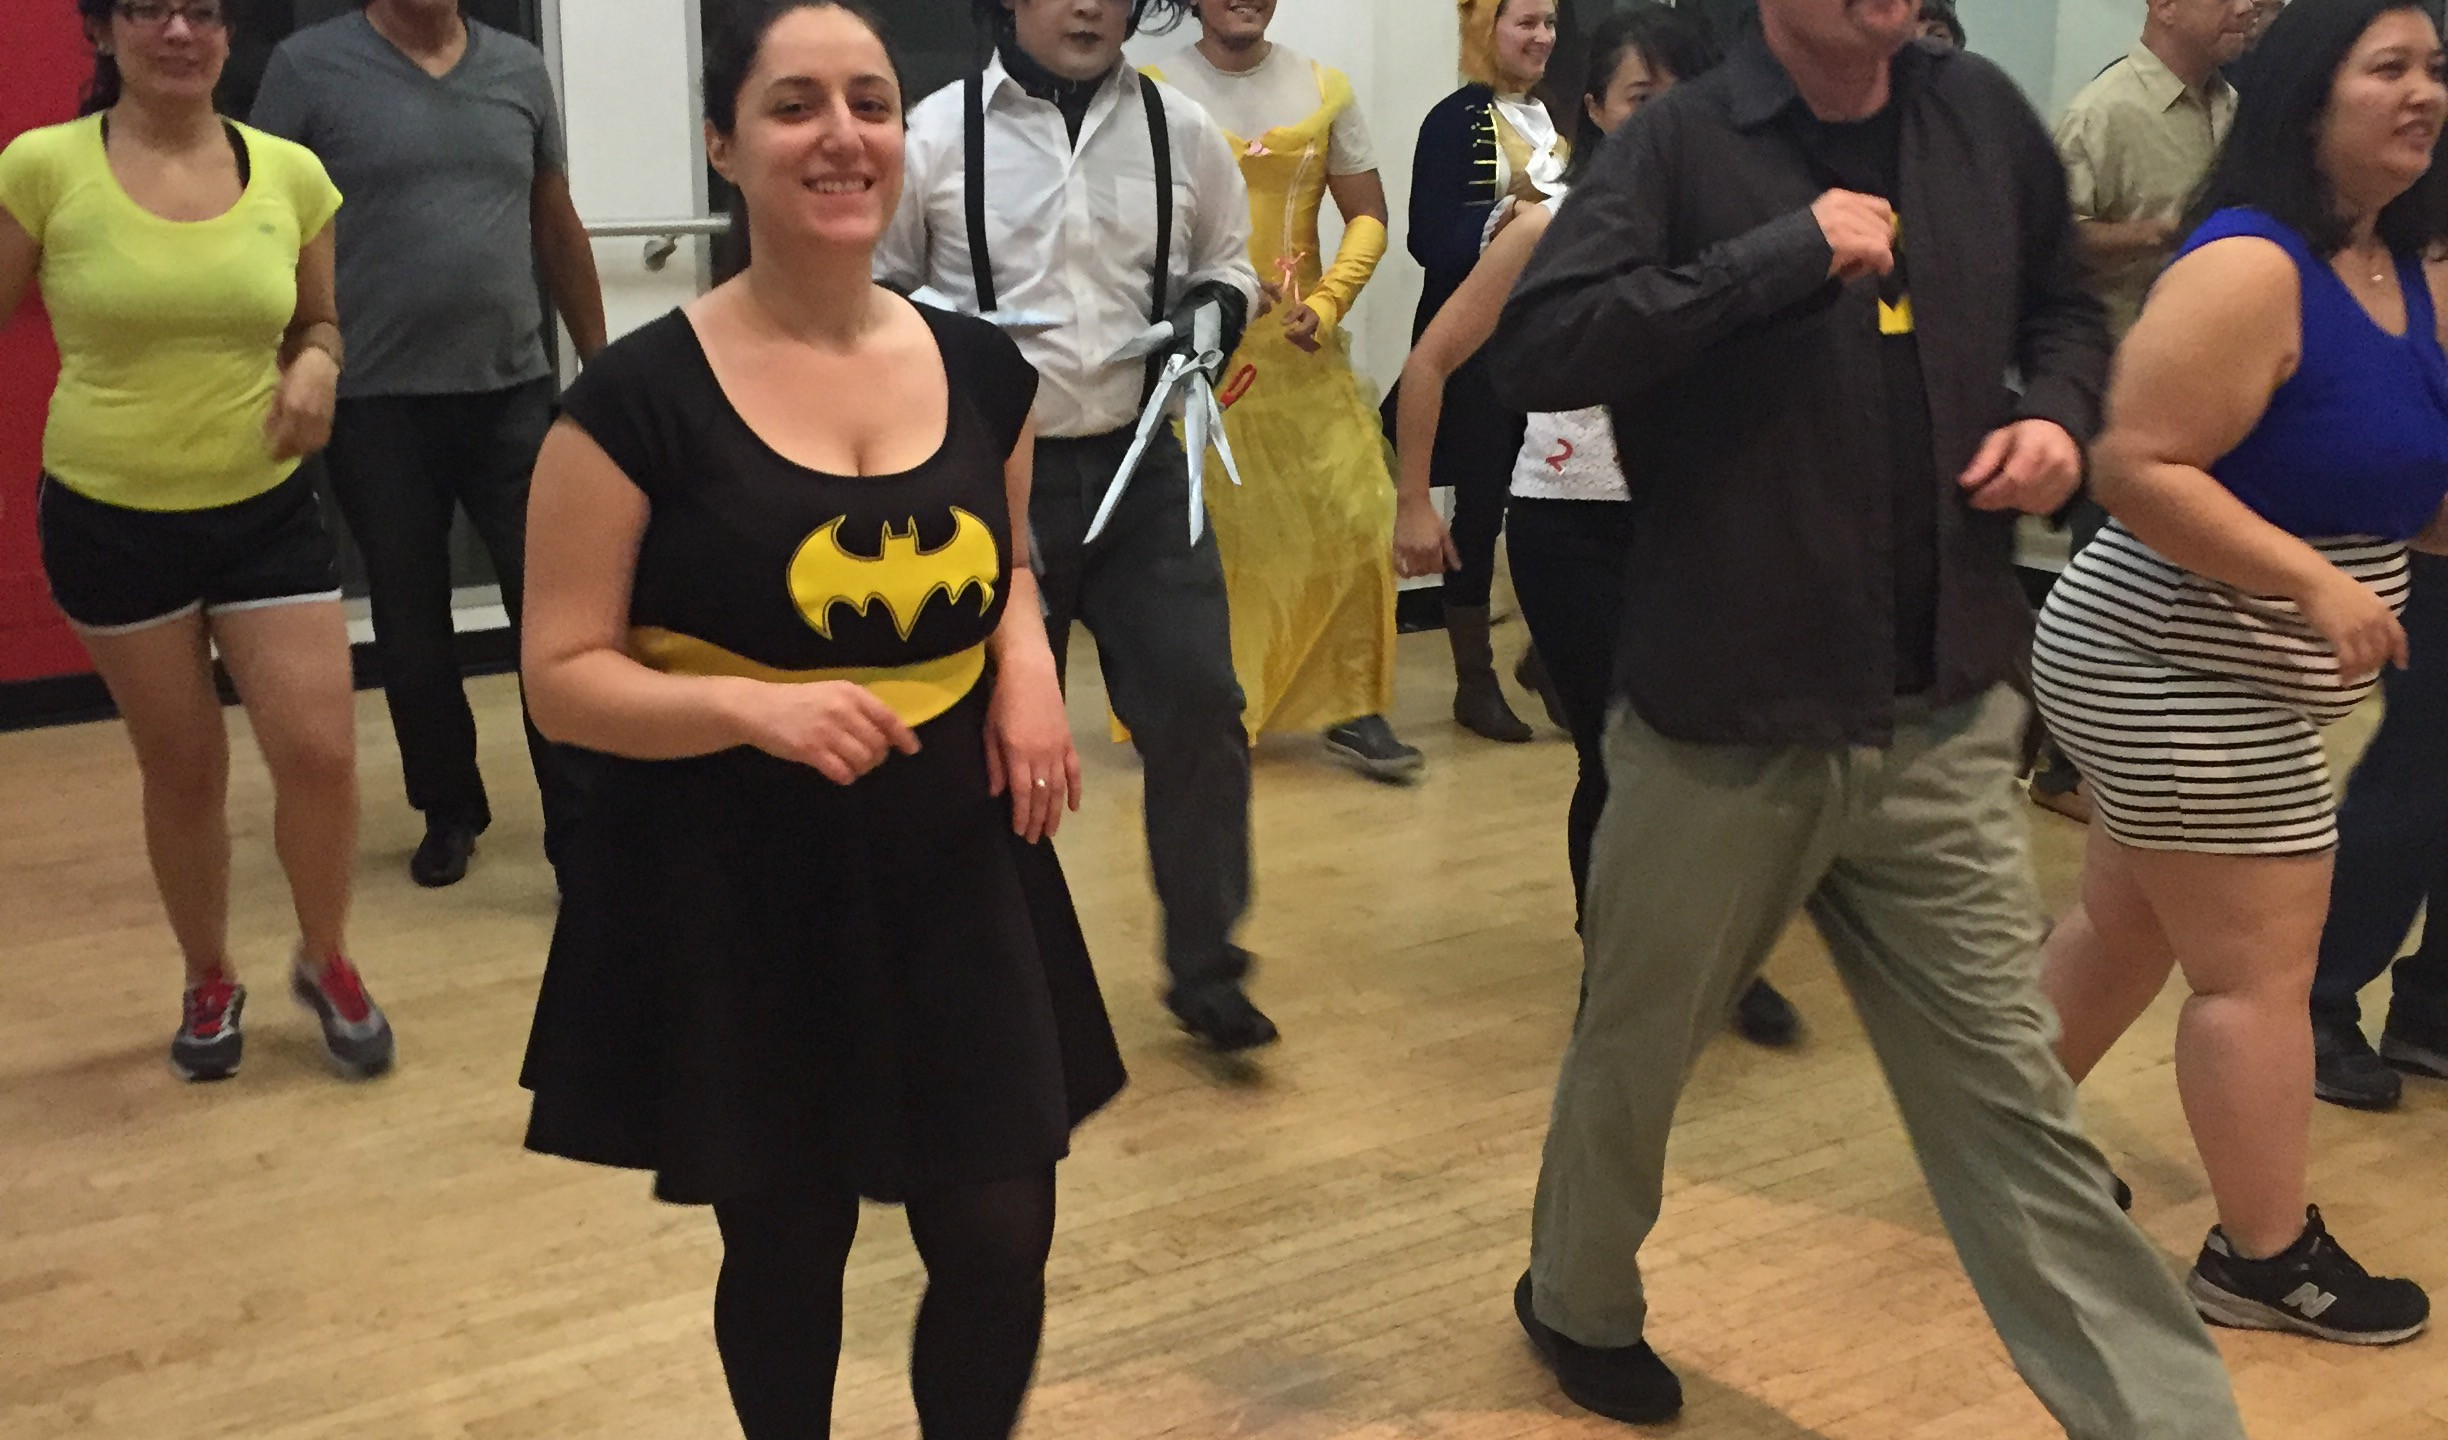 The Bat Team in Motion